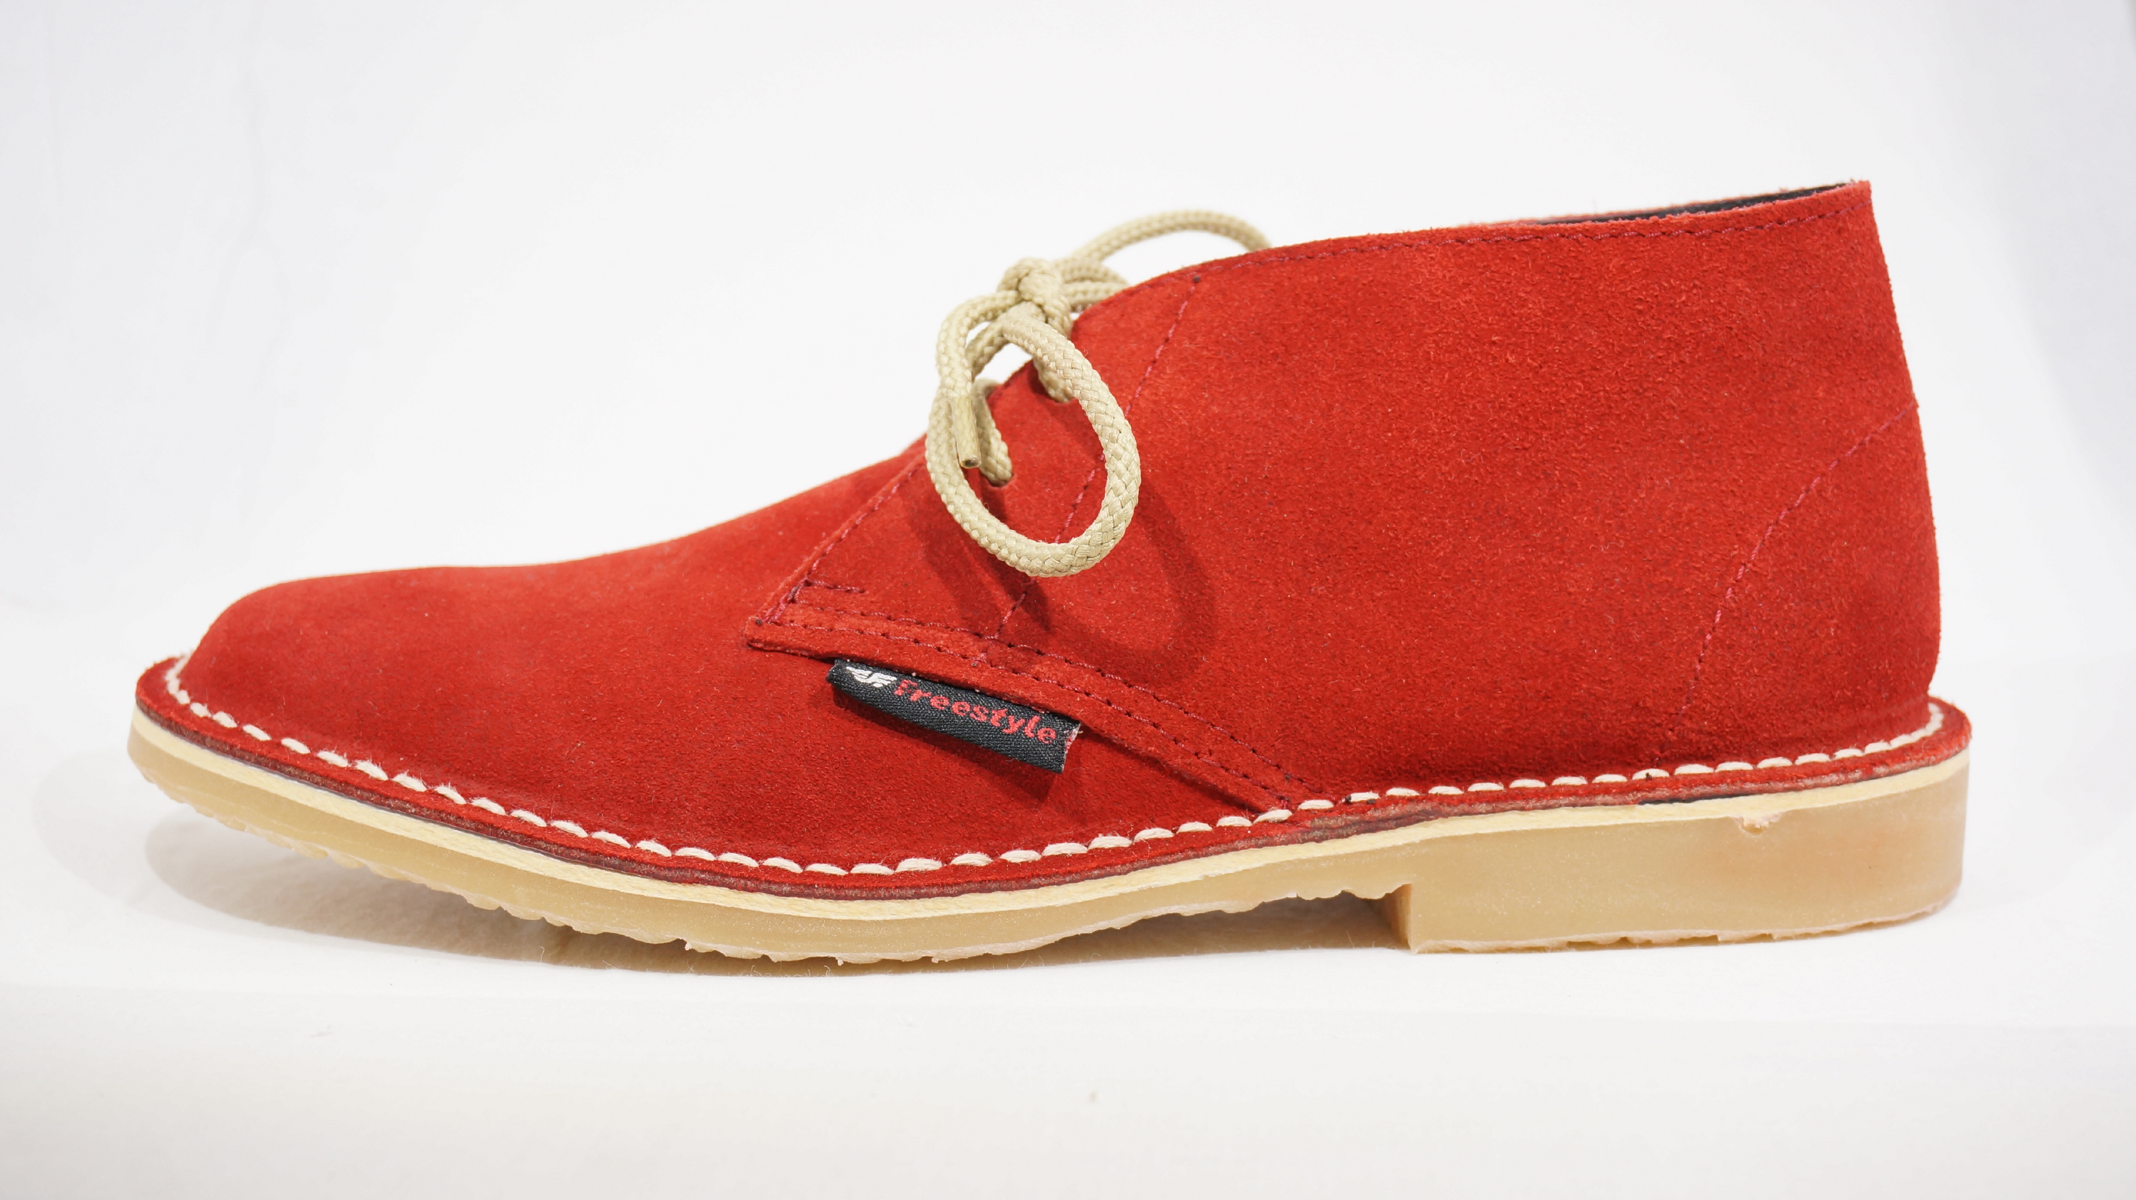 Freestyle Red Suede Hunter Veldskoen Vellies Handcrafted Genuine Leather Boot Genuine Leather Boots Leather Shoes Woman Boots